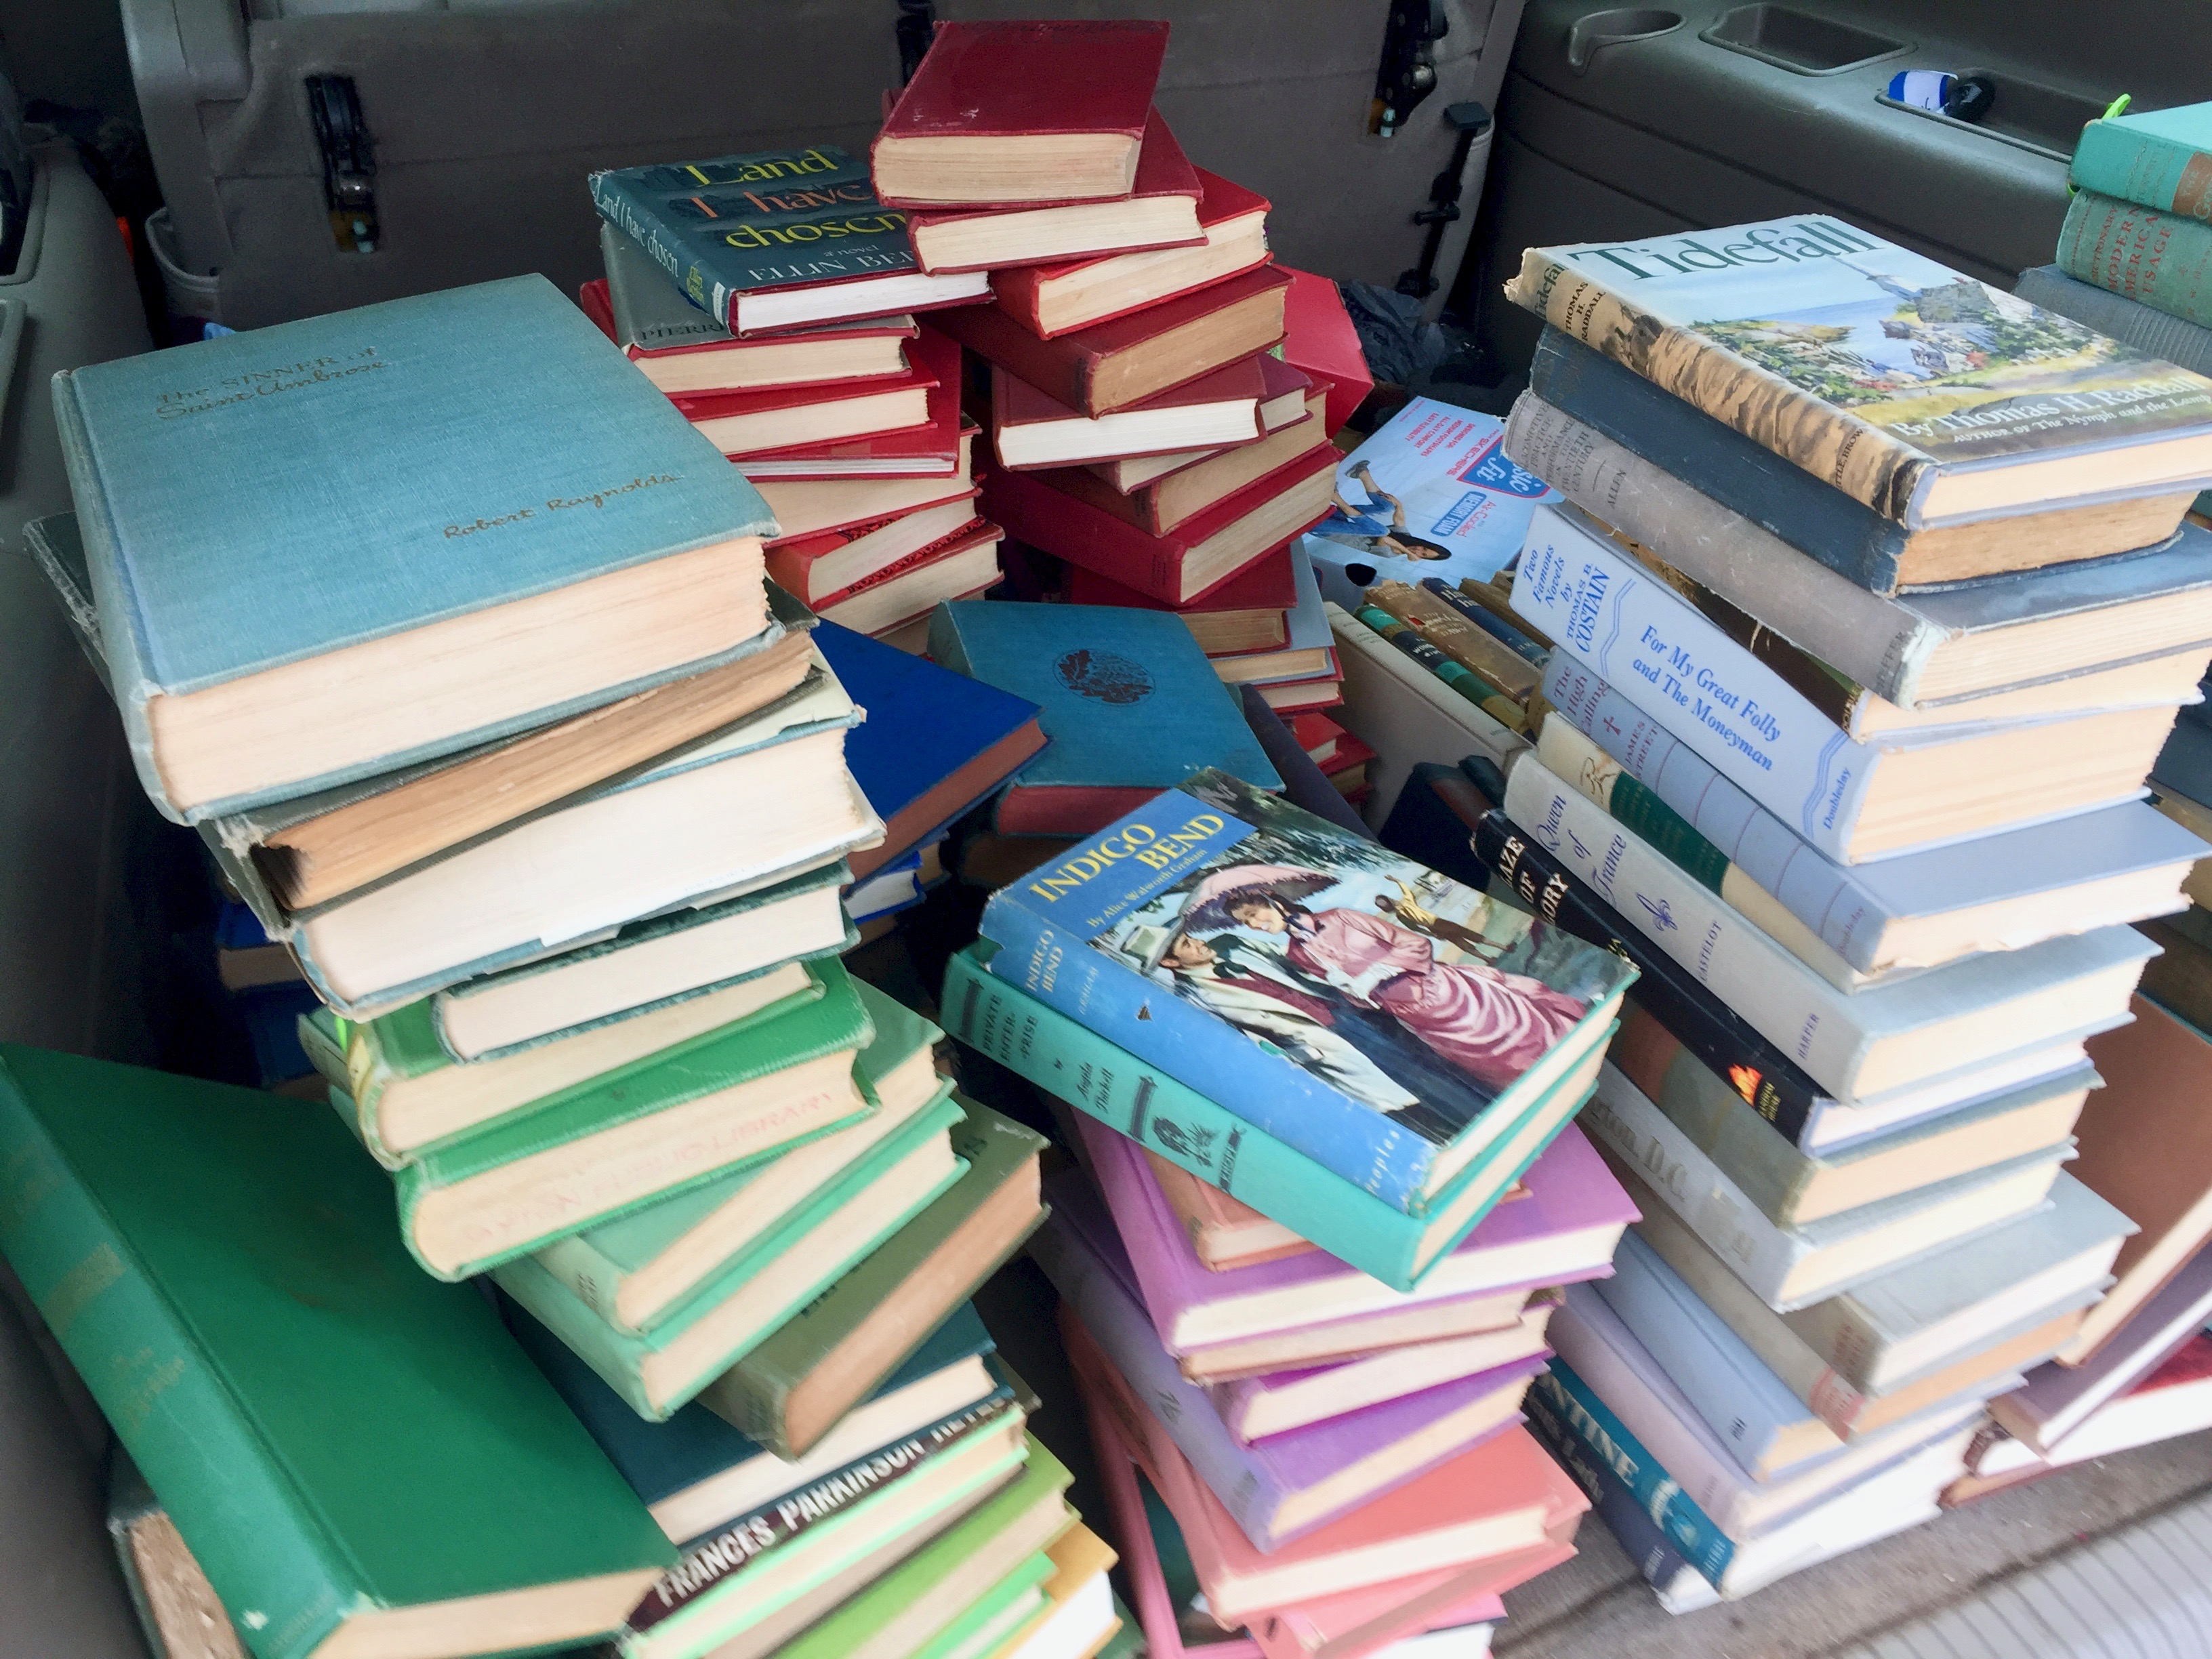 How to find vintage books for sale